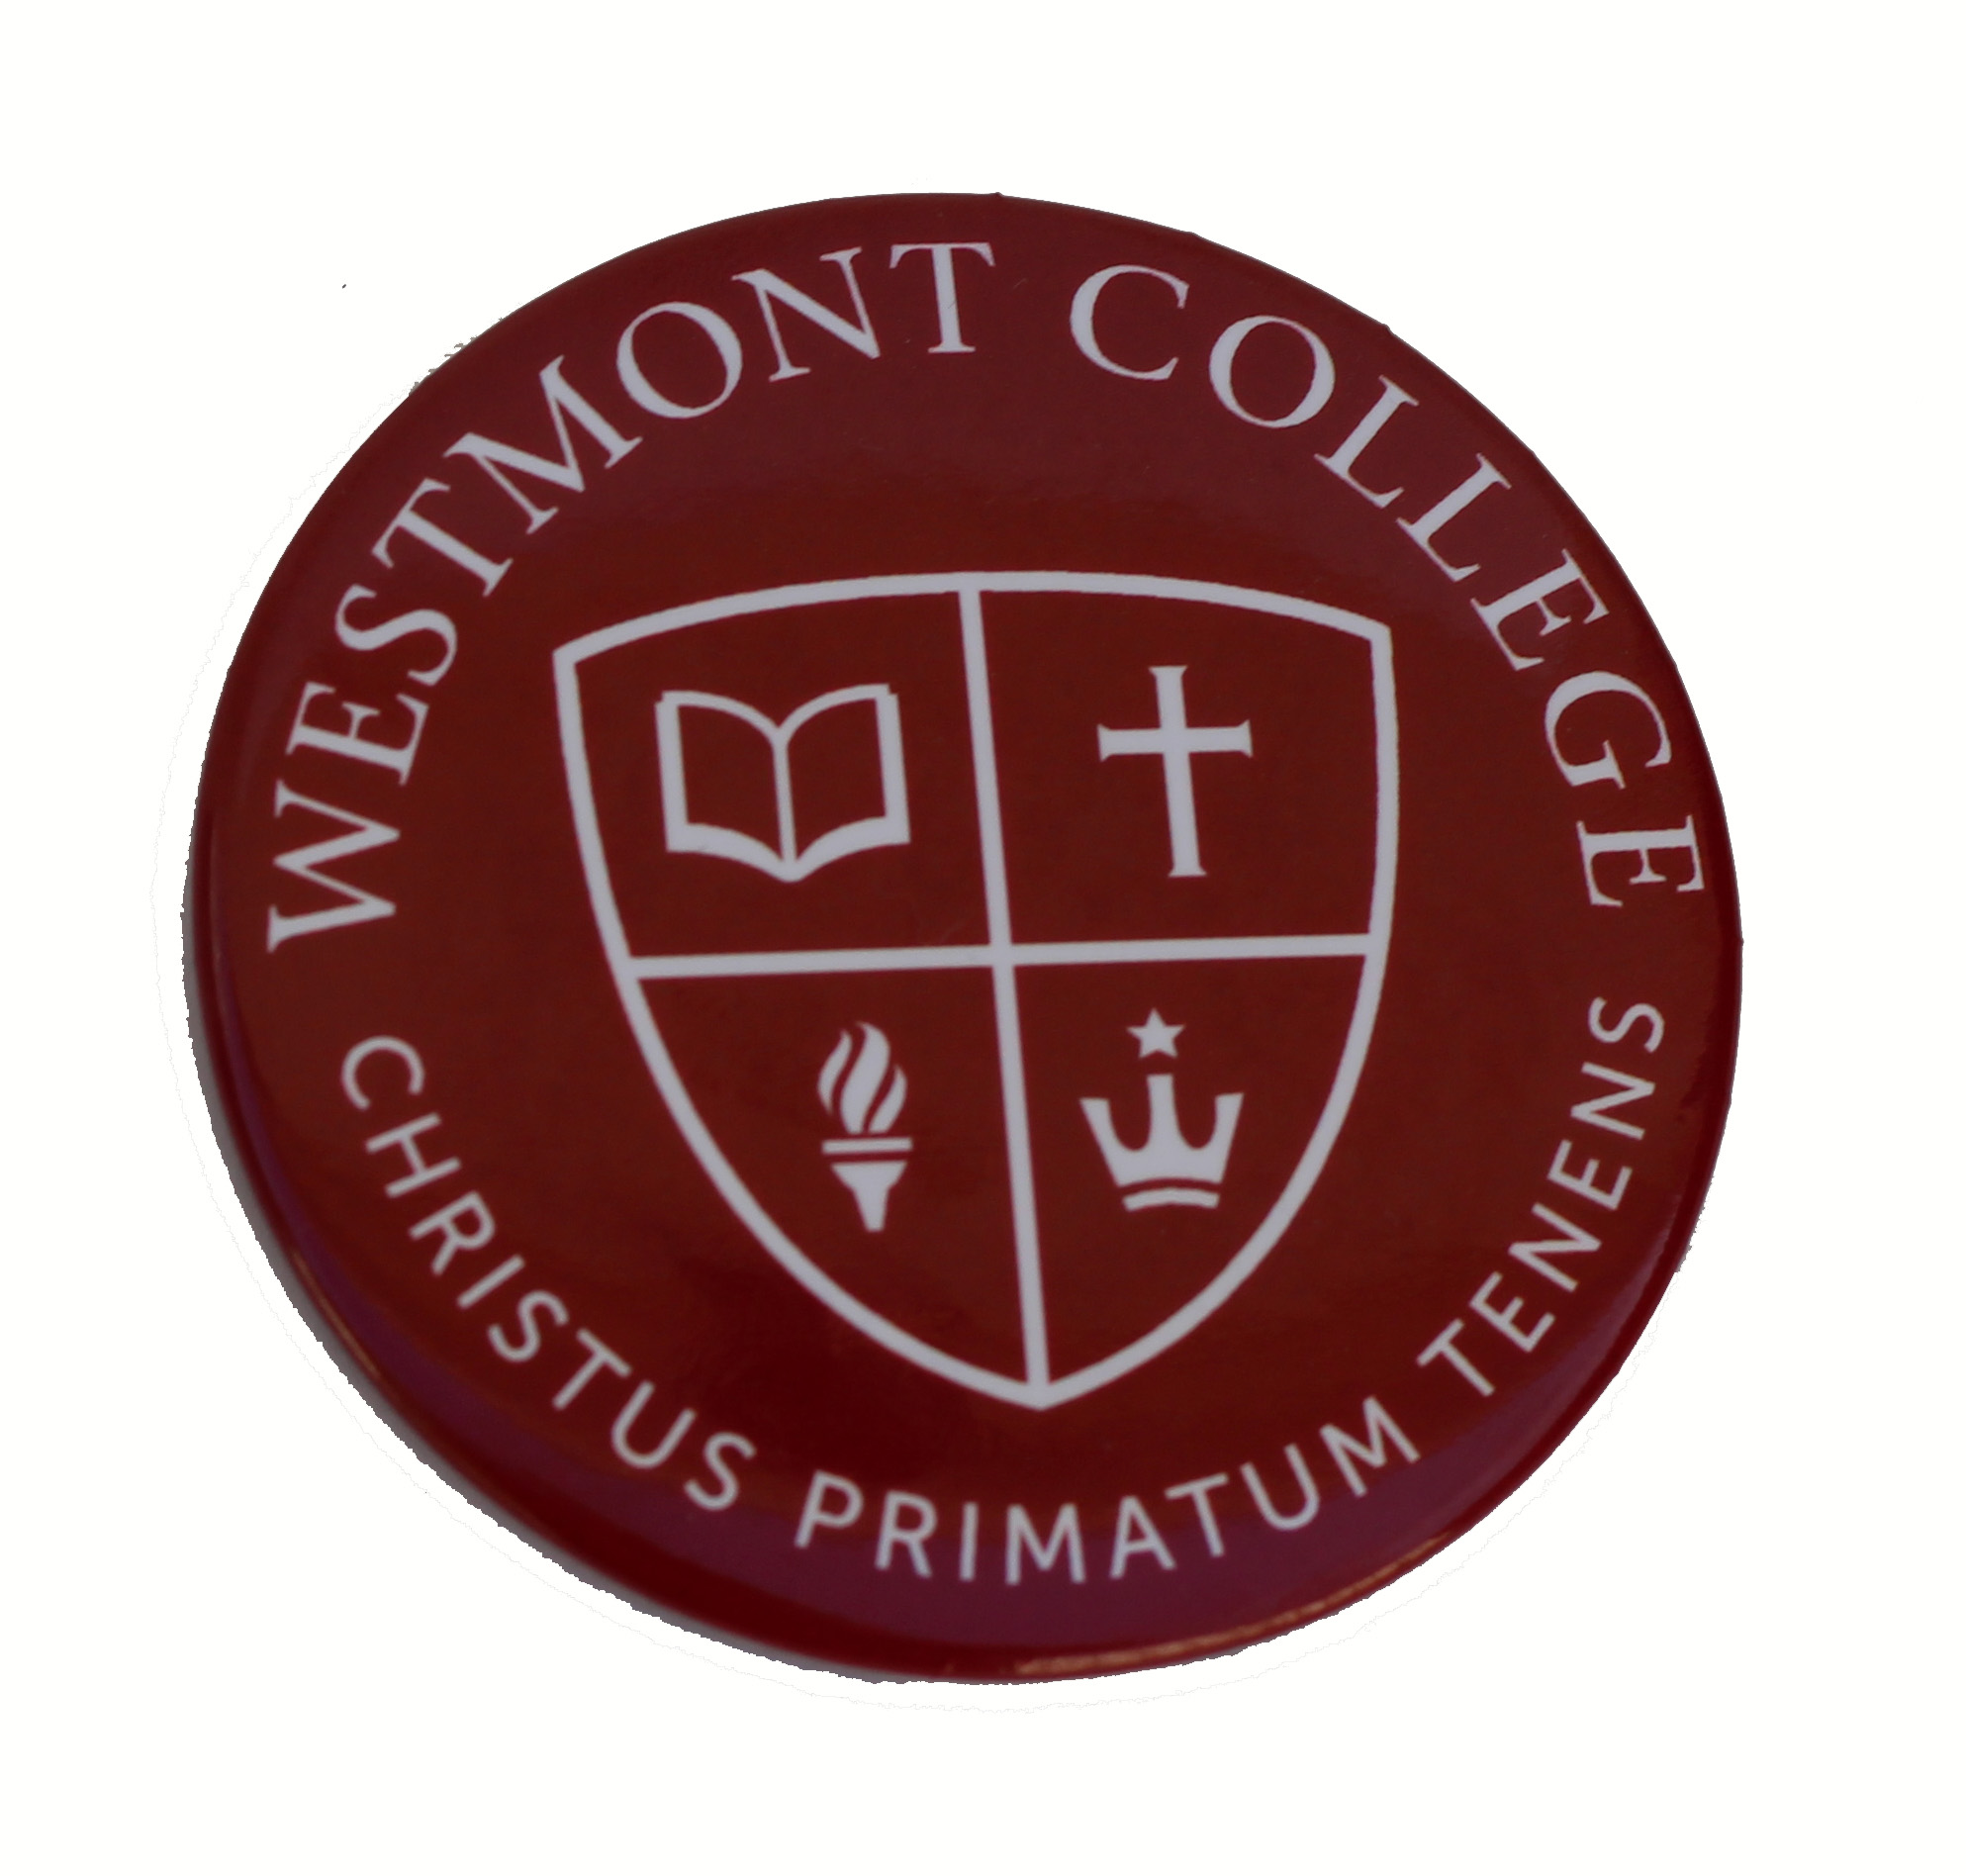 Image for the Westmont New Seal Magnet product